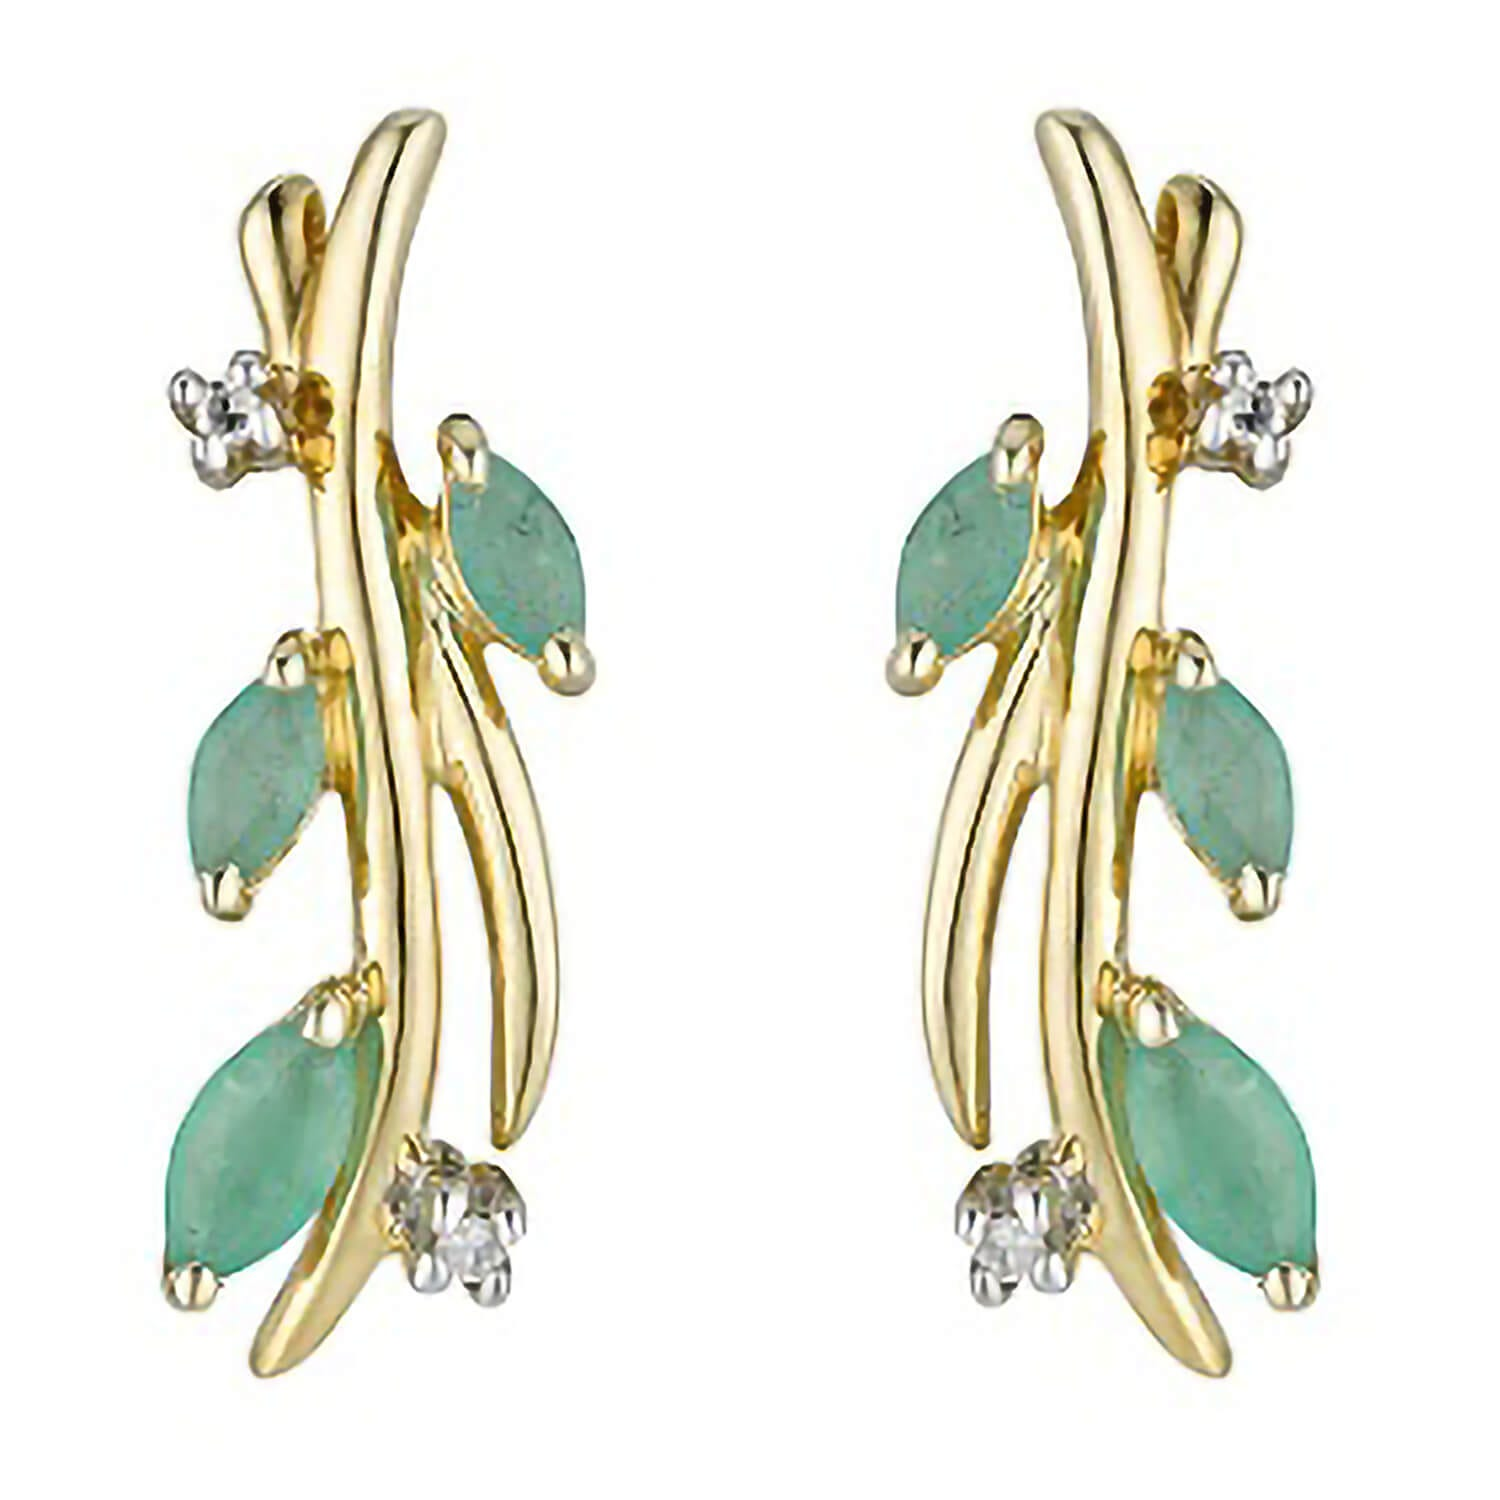 9ct gold emerald and diamond earrings